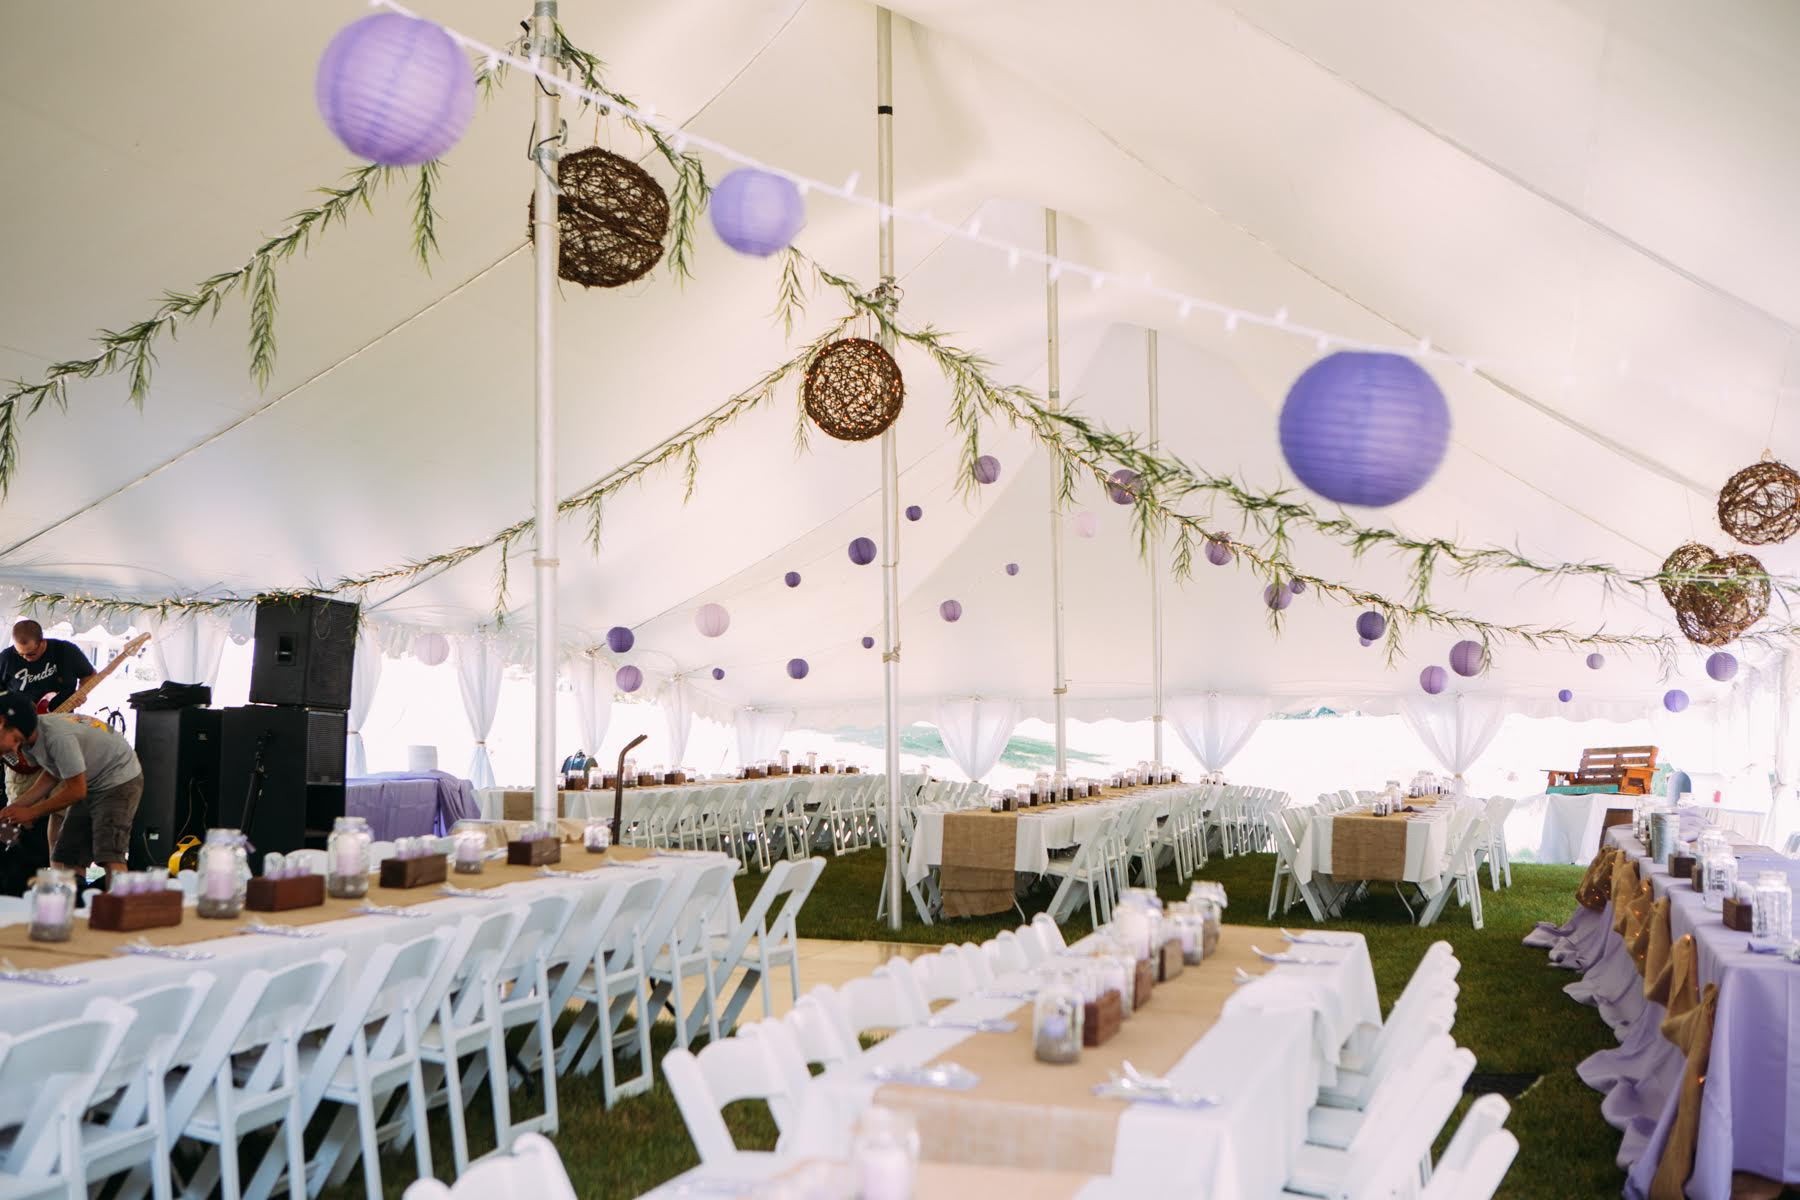 Tented wedding reception with purple and tan chinese lanterns and burlap accents